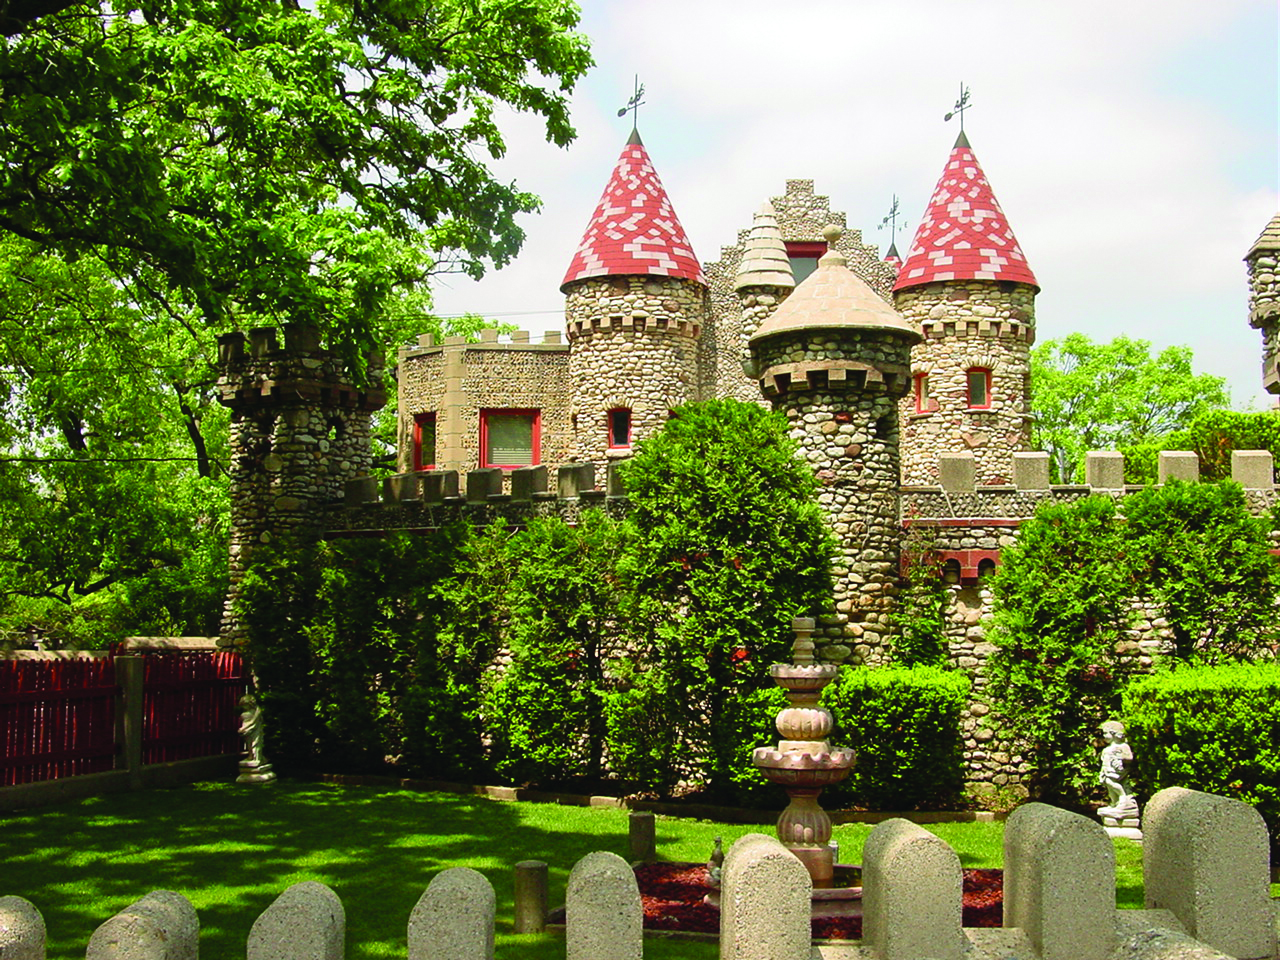 Bettendorf Castle Tour